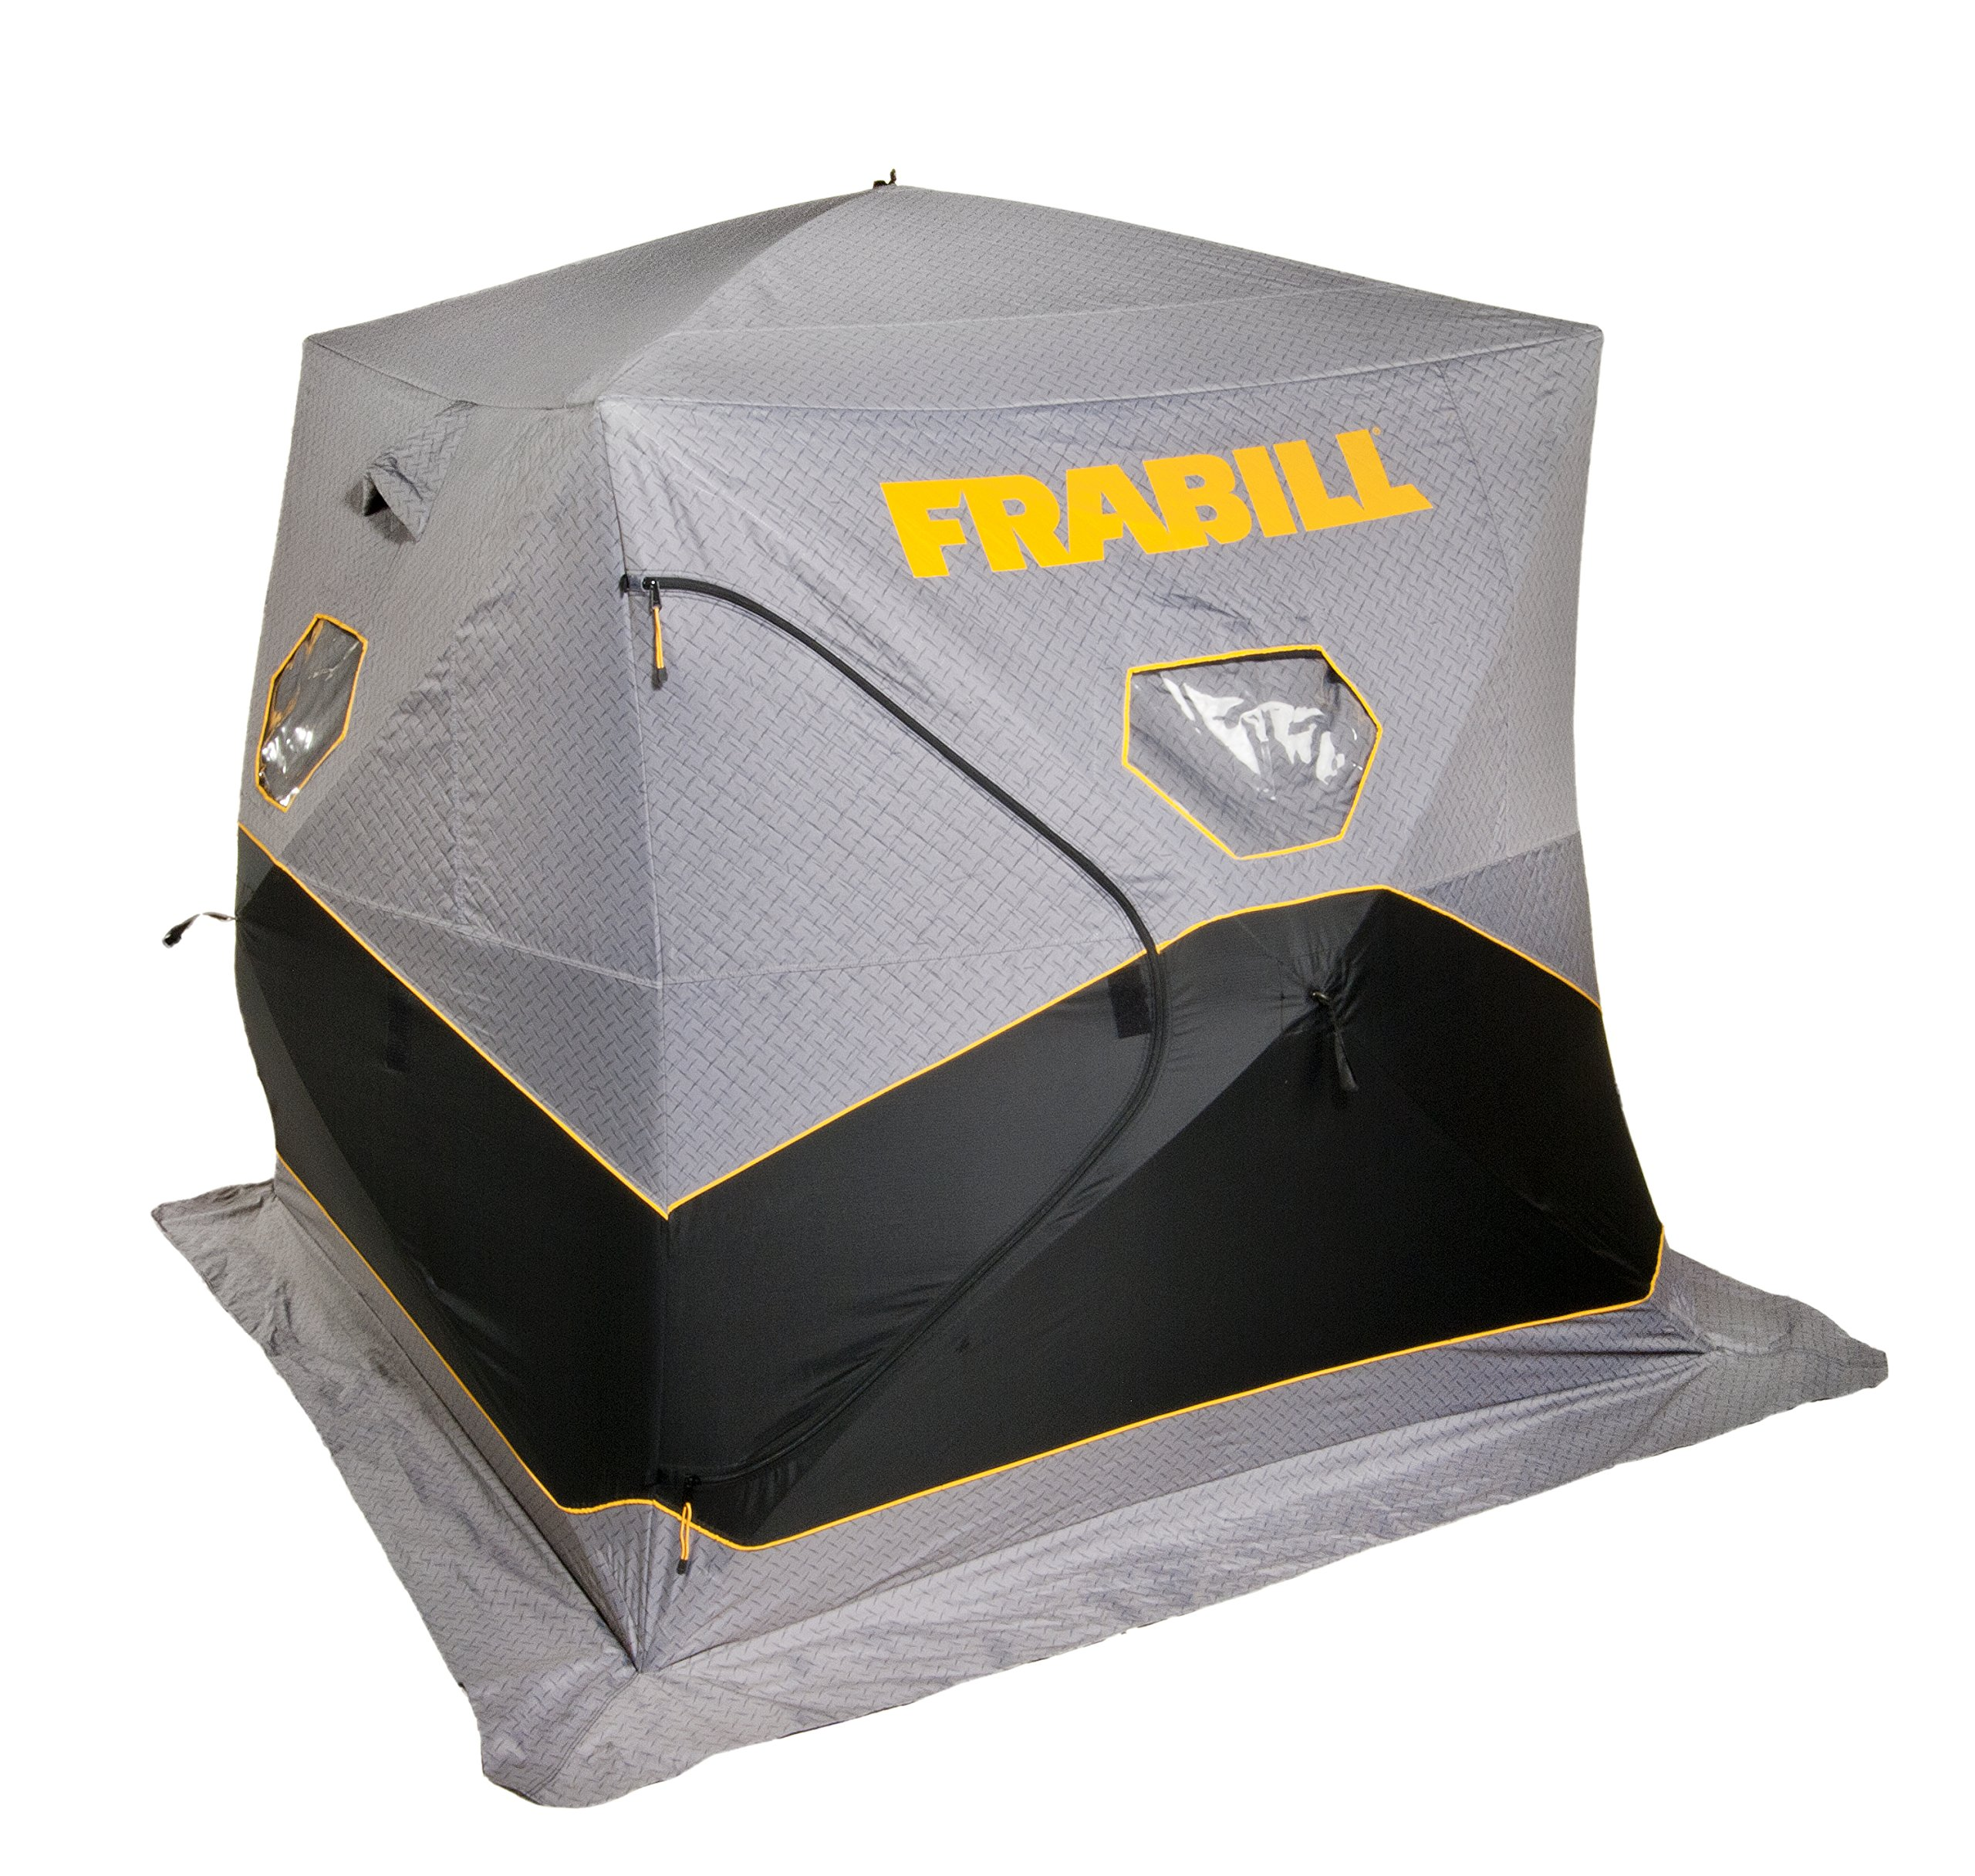 Frabill Bunker 250 Hub Insulated 2 - 3 Man Shelter by Frabill